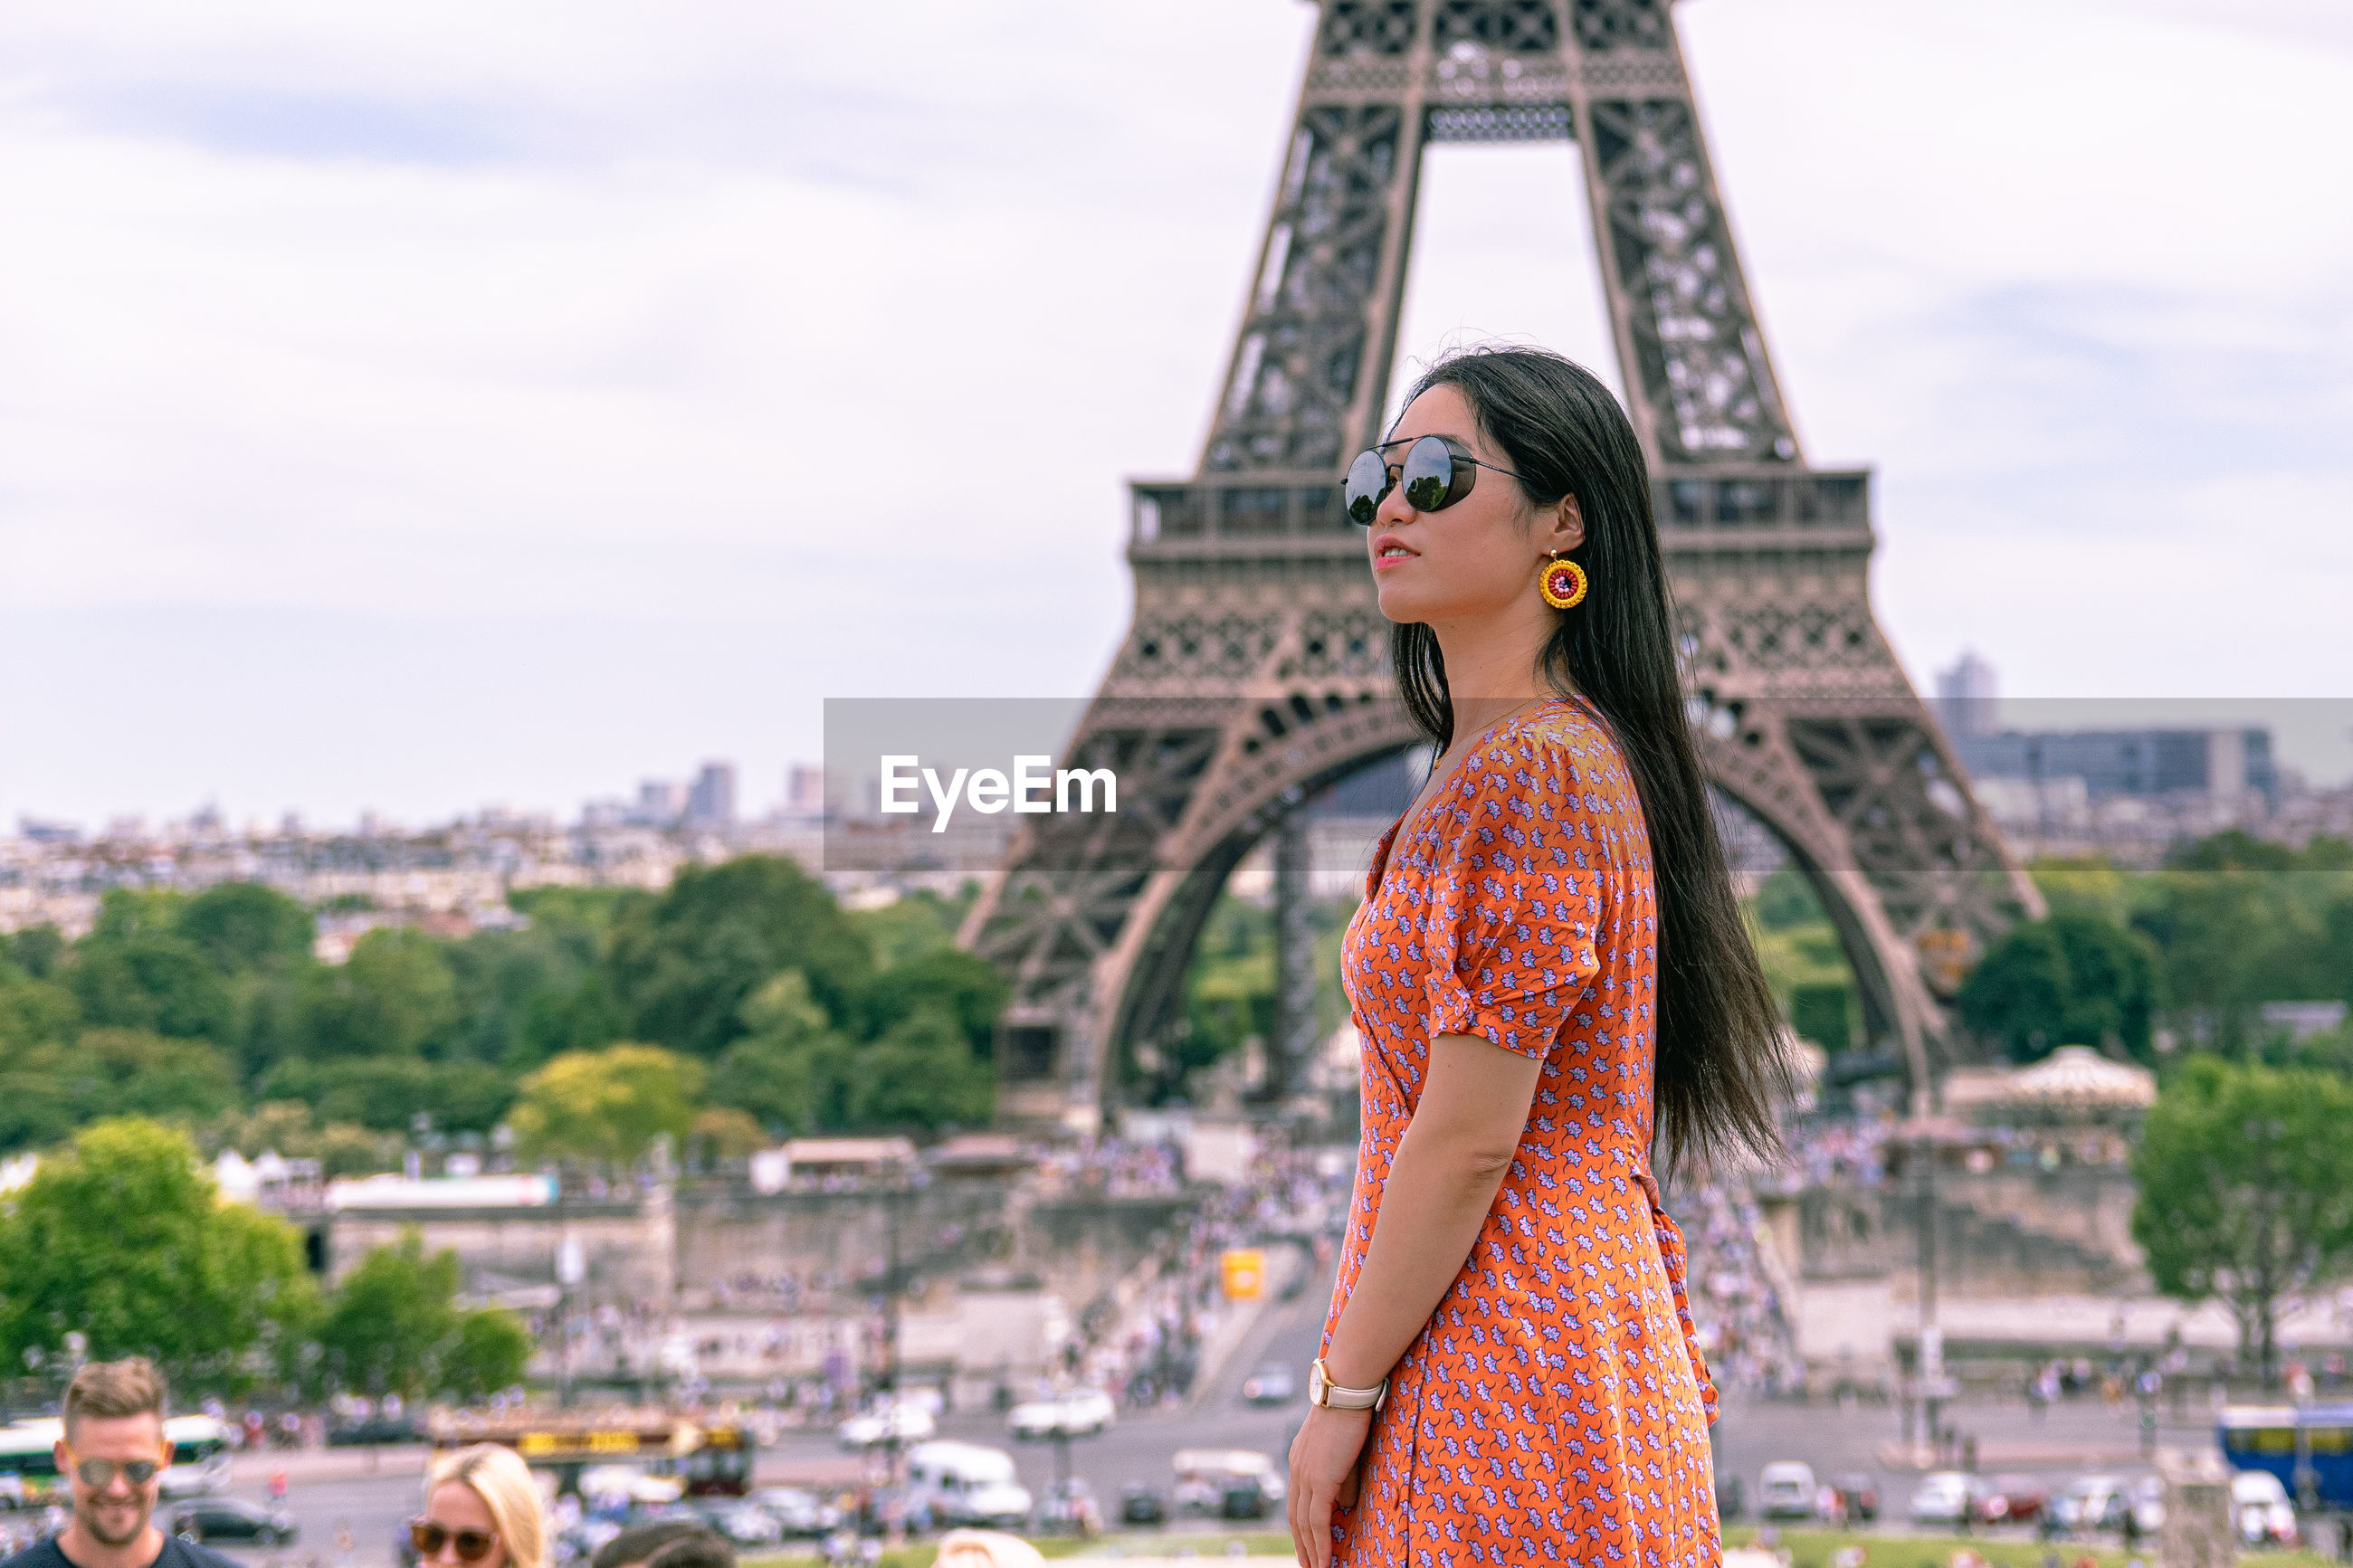 Side view of woman standing against eiffel tower